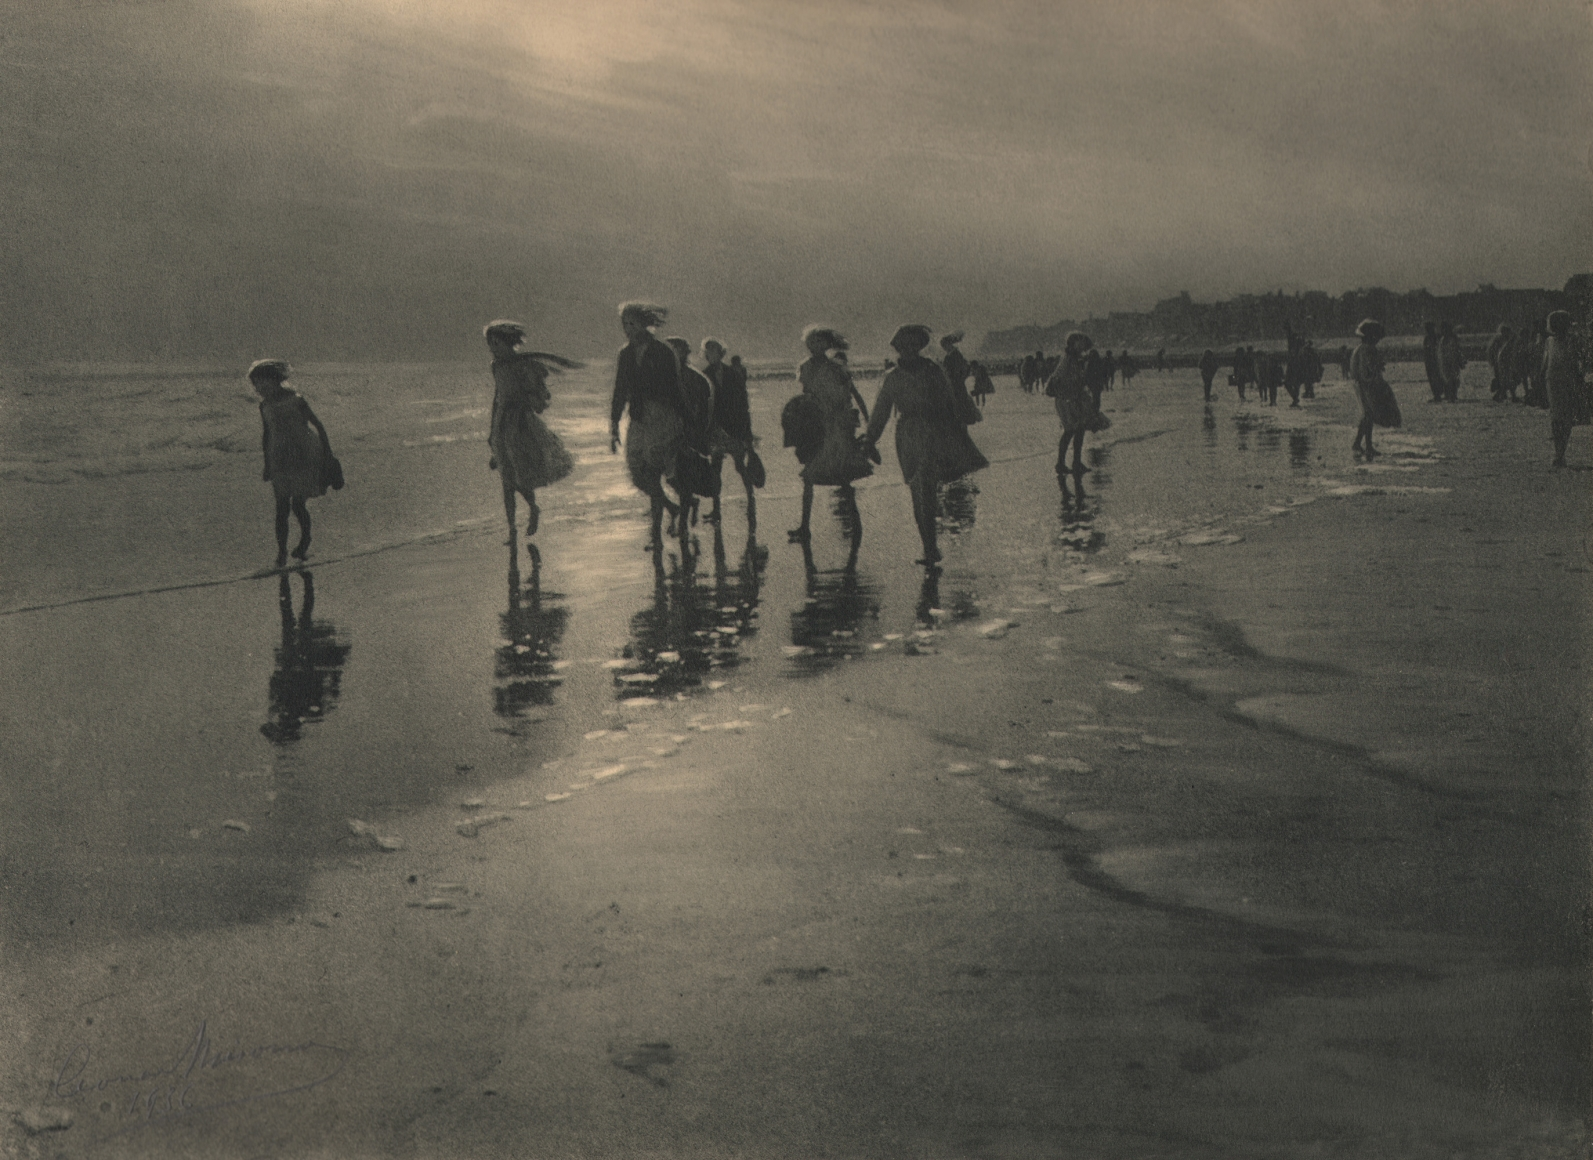 21. Léonard Misonne, La brise, 1926. A group of girls walk along the beach with bare feet in the water. Gray/green-toned print.